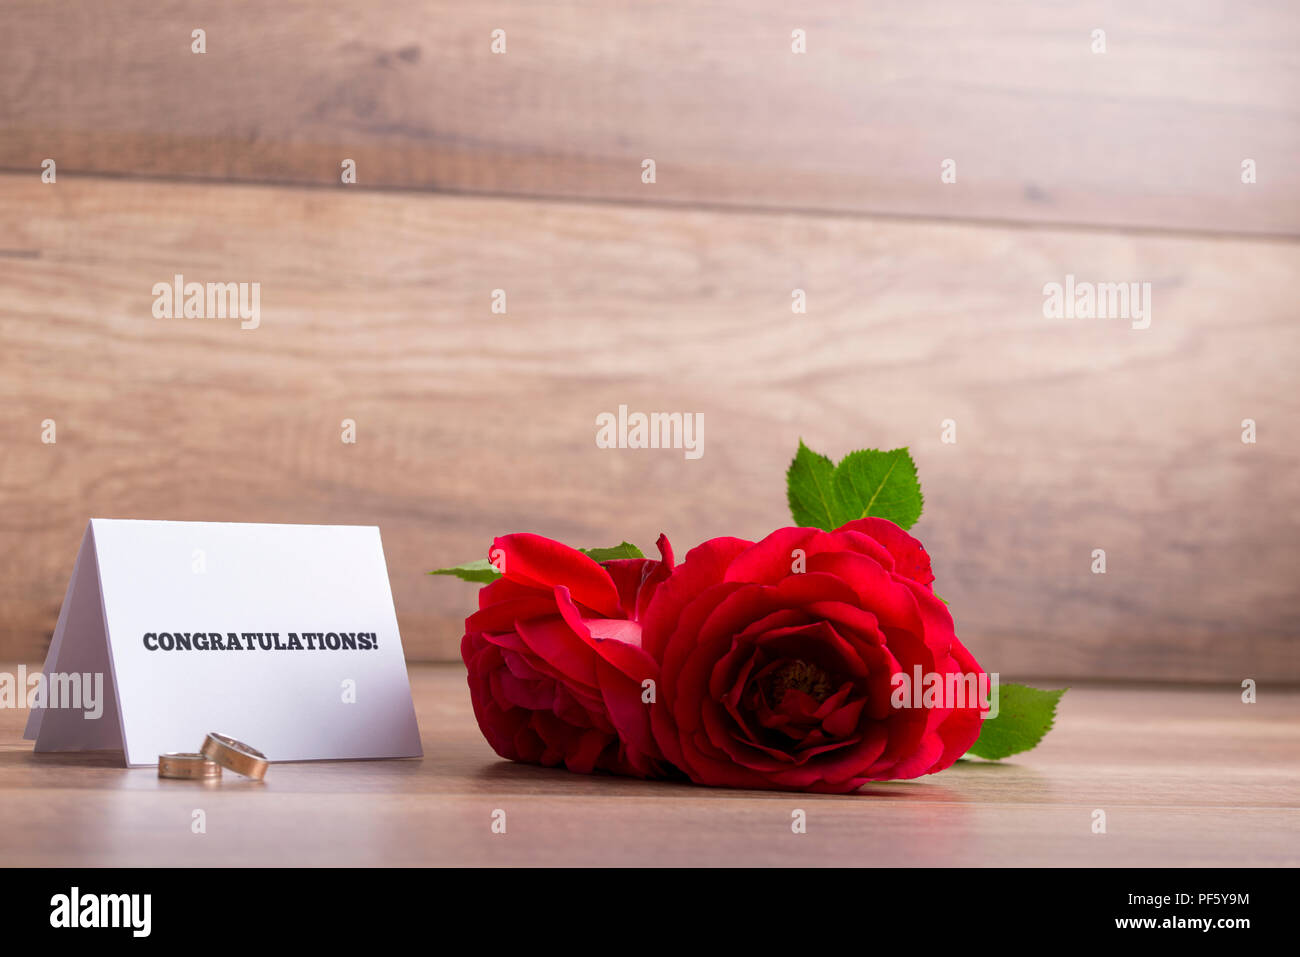 Wedding greetings stock photos wedding greetings stock images alamy wedding greetings white card with congratulations sign wedding rings and two red roses on m4hsunfo